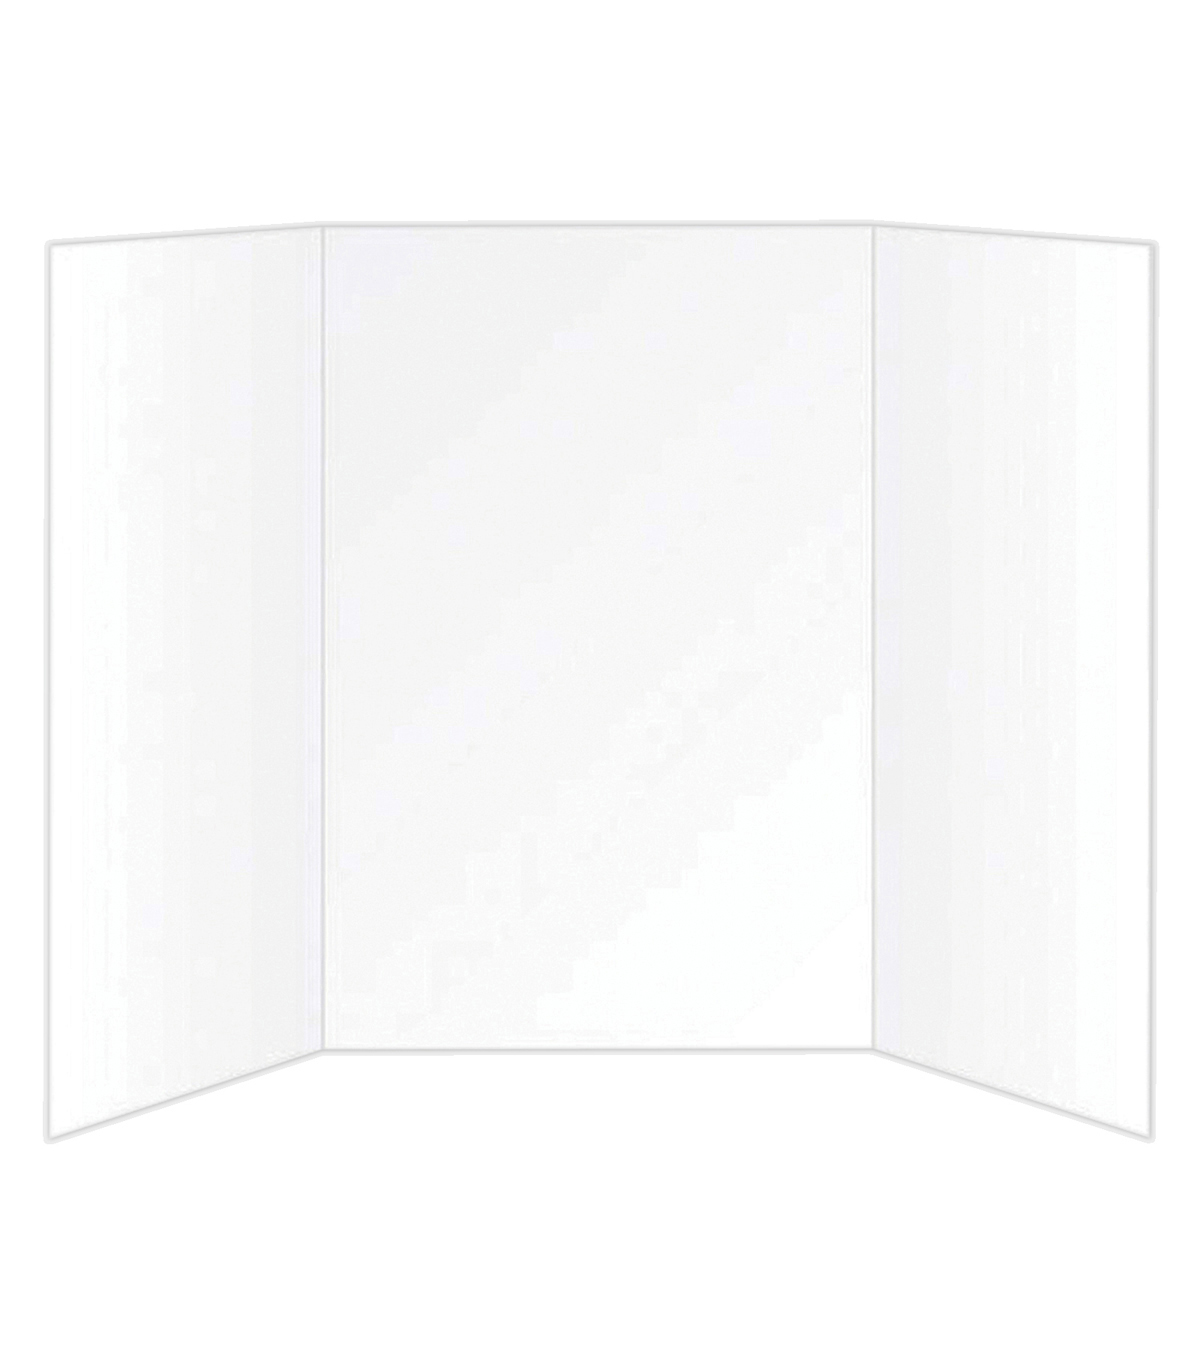 Flipside Foam Project Board, 36\u0022W x 48\u0022L, White, Pack of 10